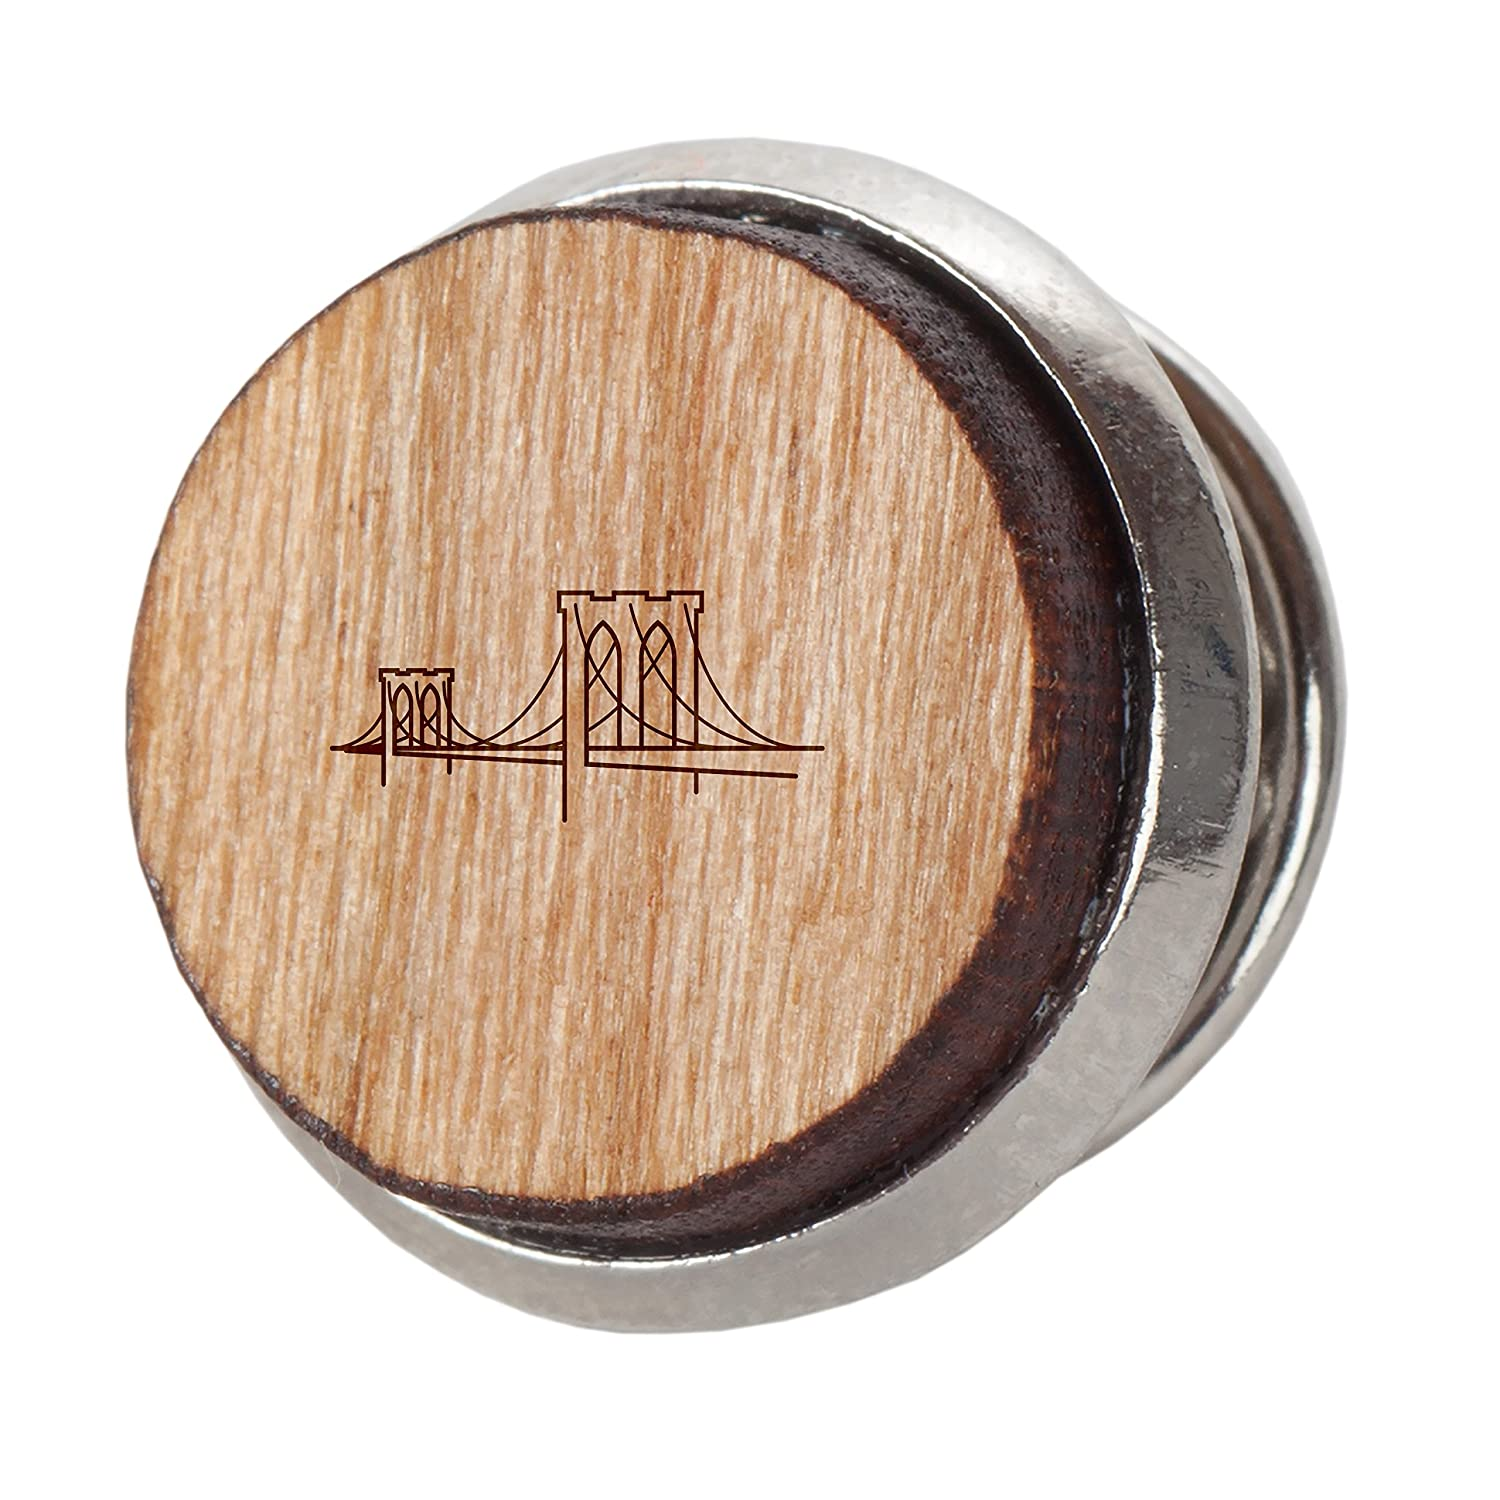 Engraved Tie Tack Gift 12Mm Simple Tie Clip with Laser Engraved Design Brooklyn Bridge Stylish Cherry Wood Tie Tack